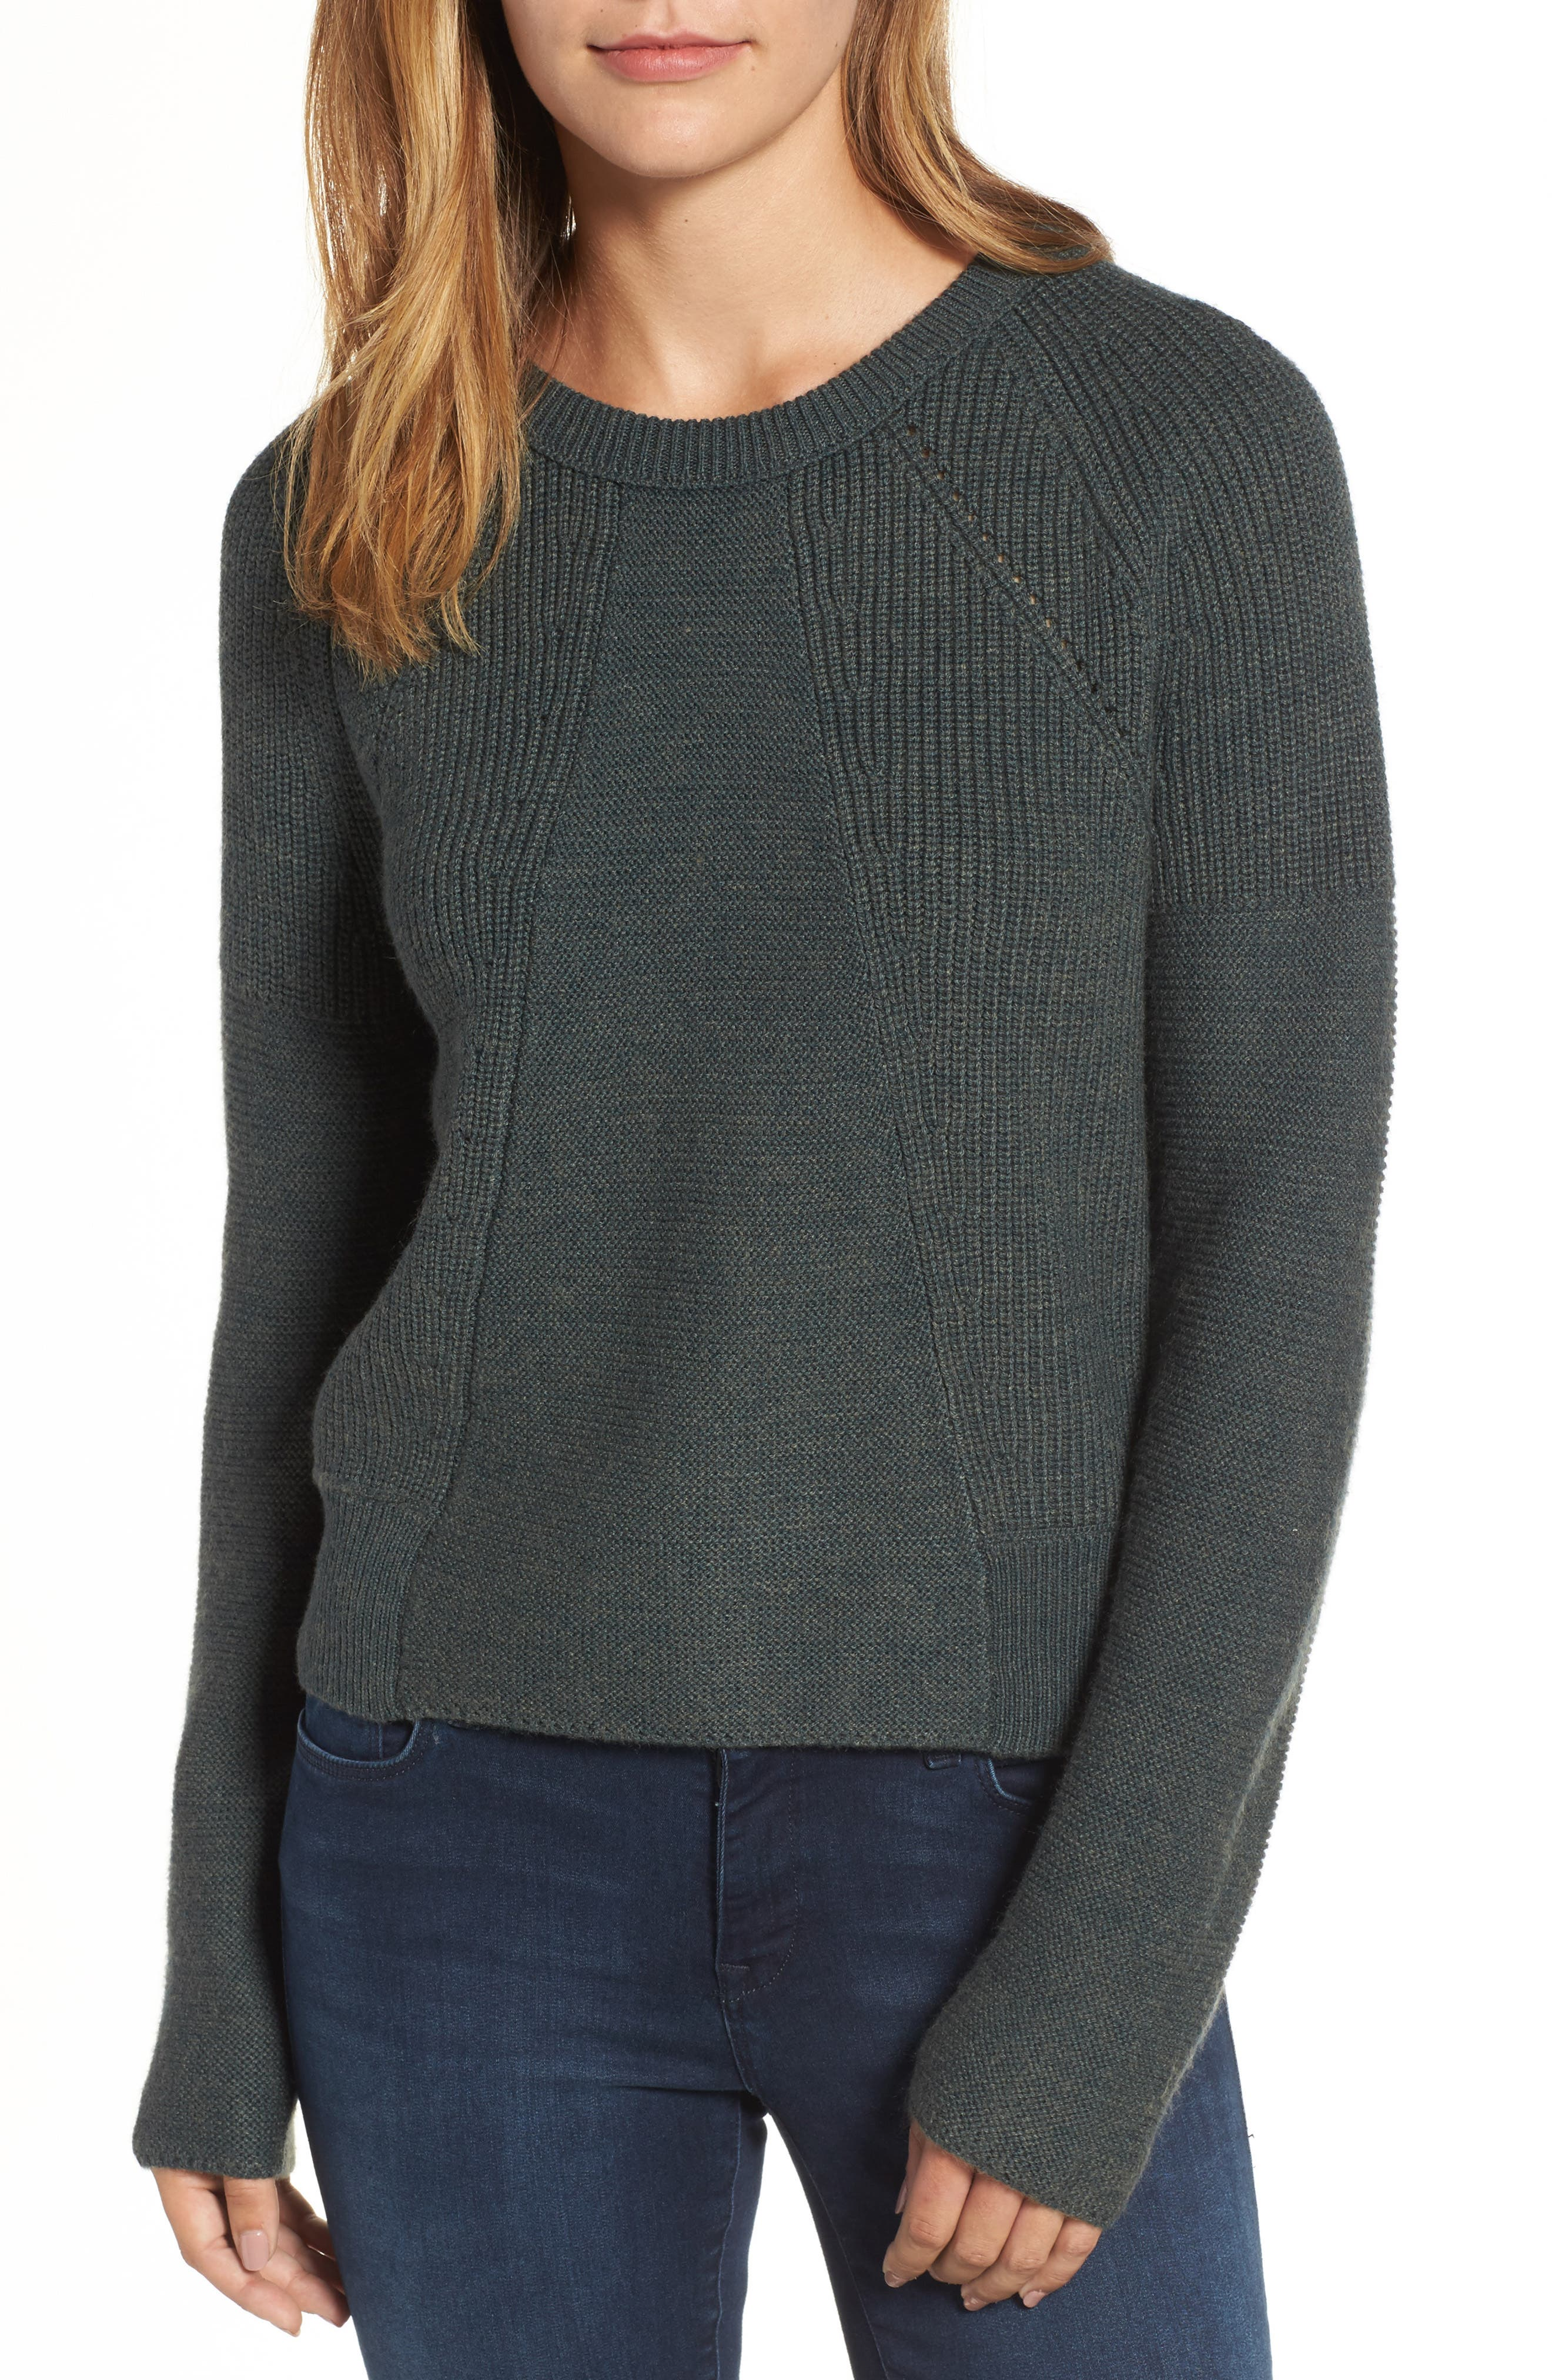 Engineered Stitch Sweater,                         Main,                         color, Military